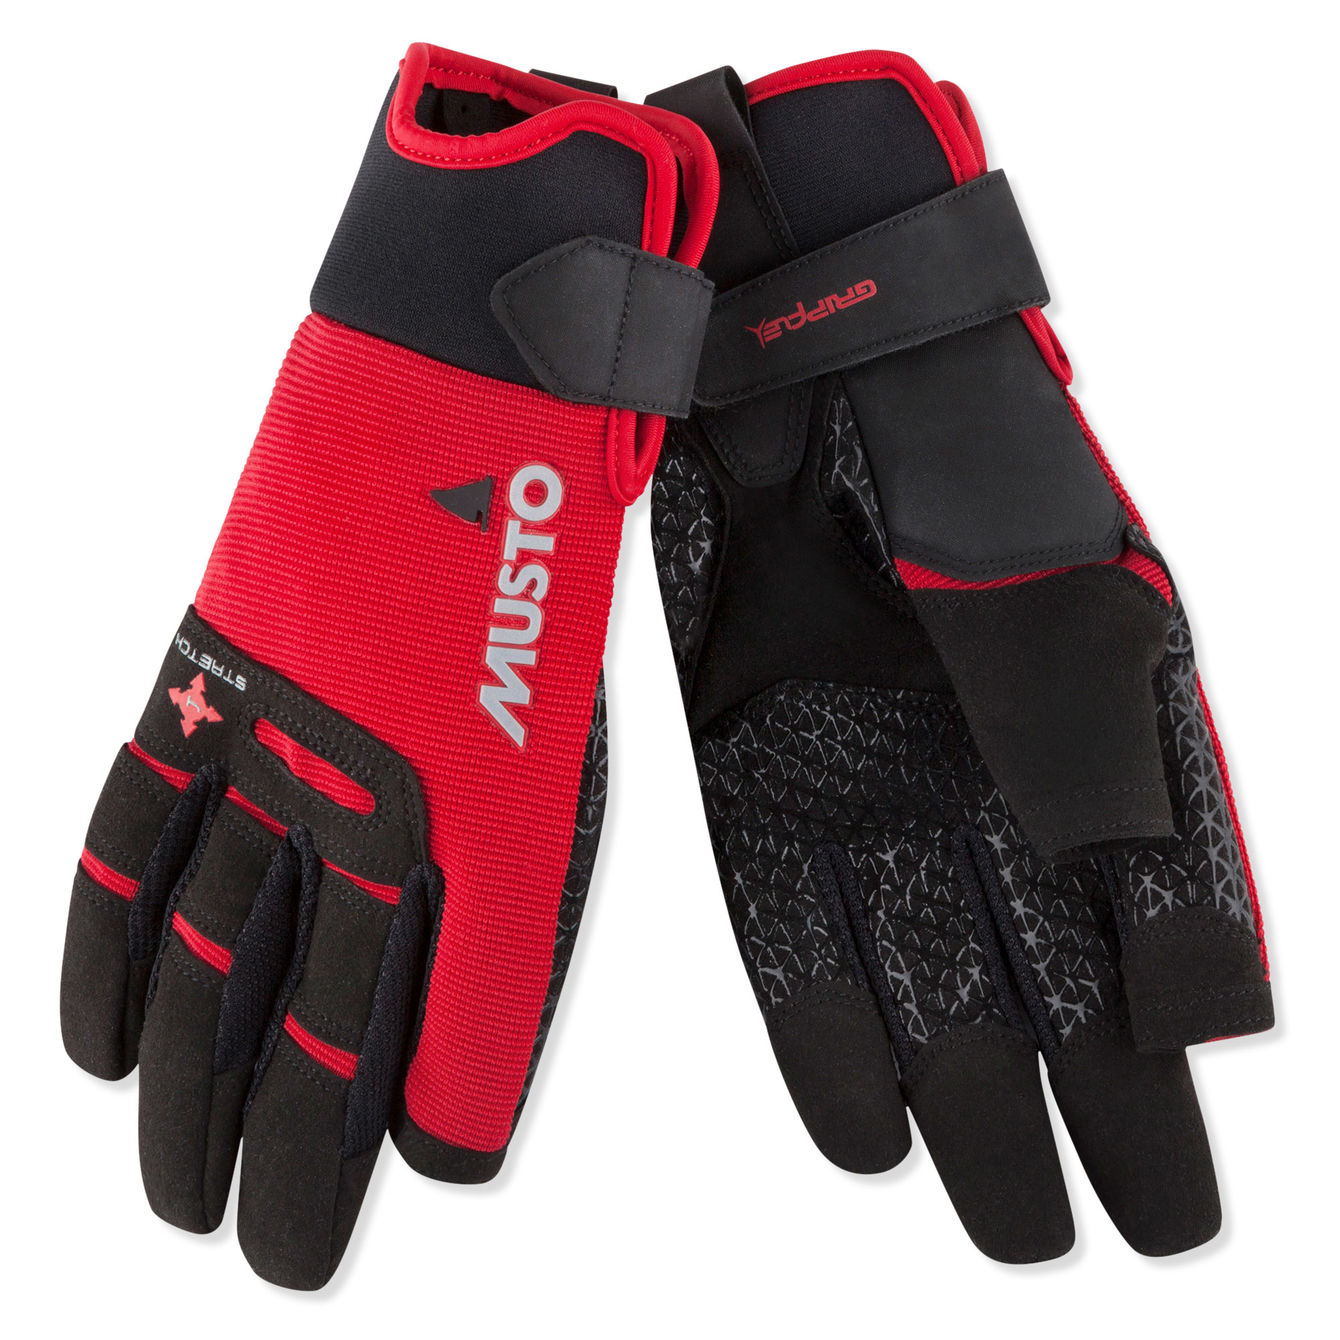 PERFORMANCE LF GLOVE